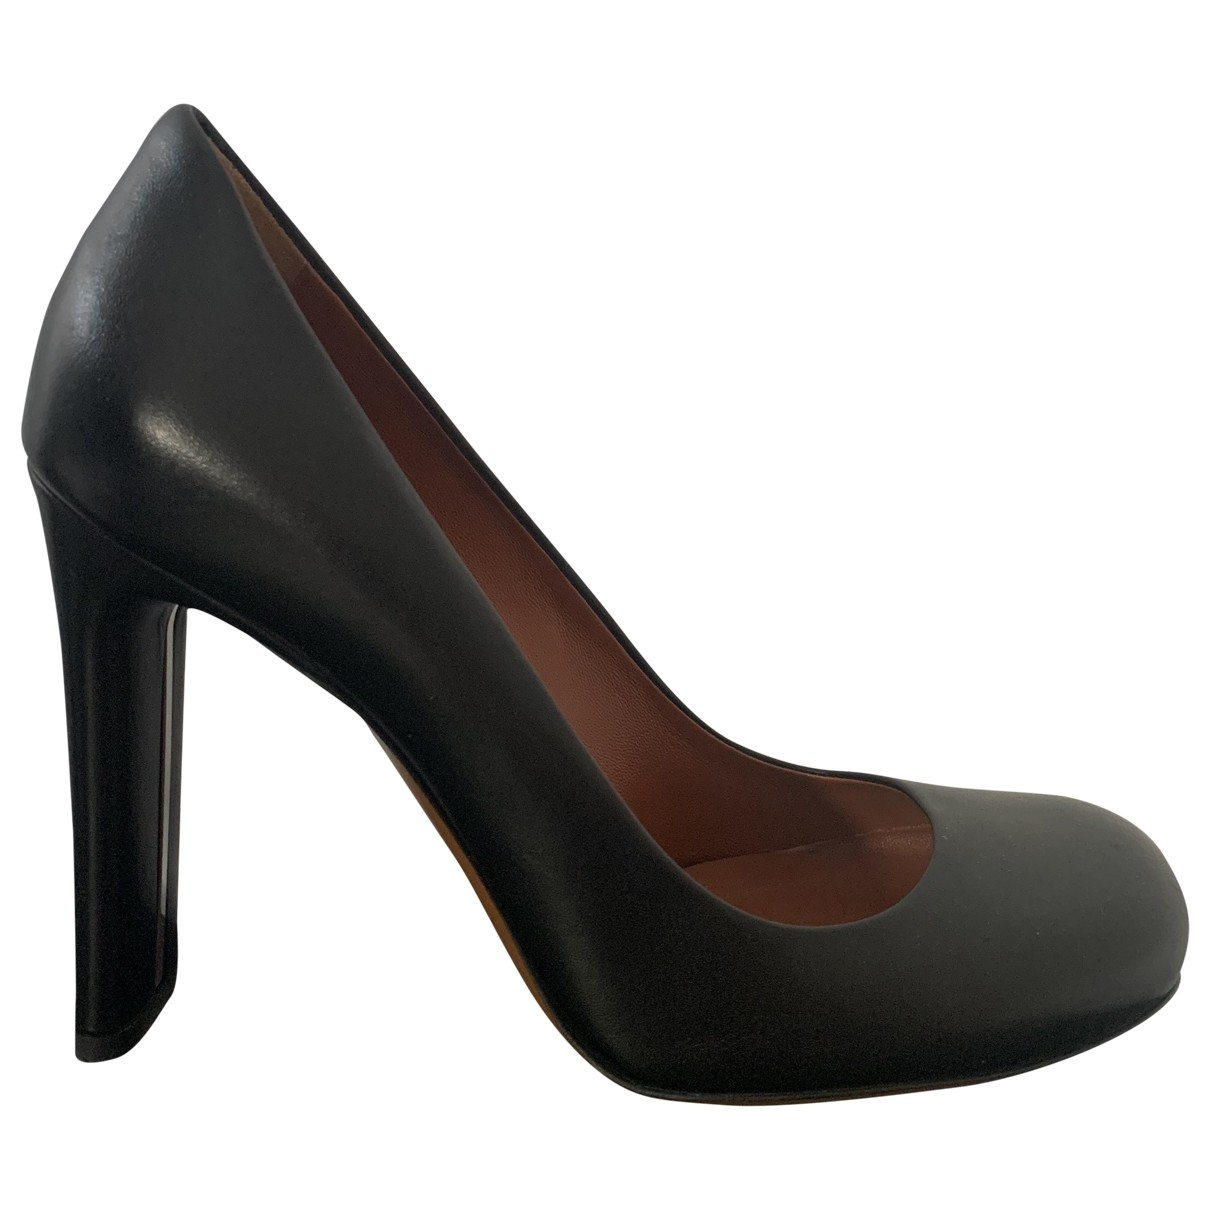 Mulberry \N Black Leather Heels for Women 37 EU